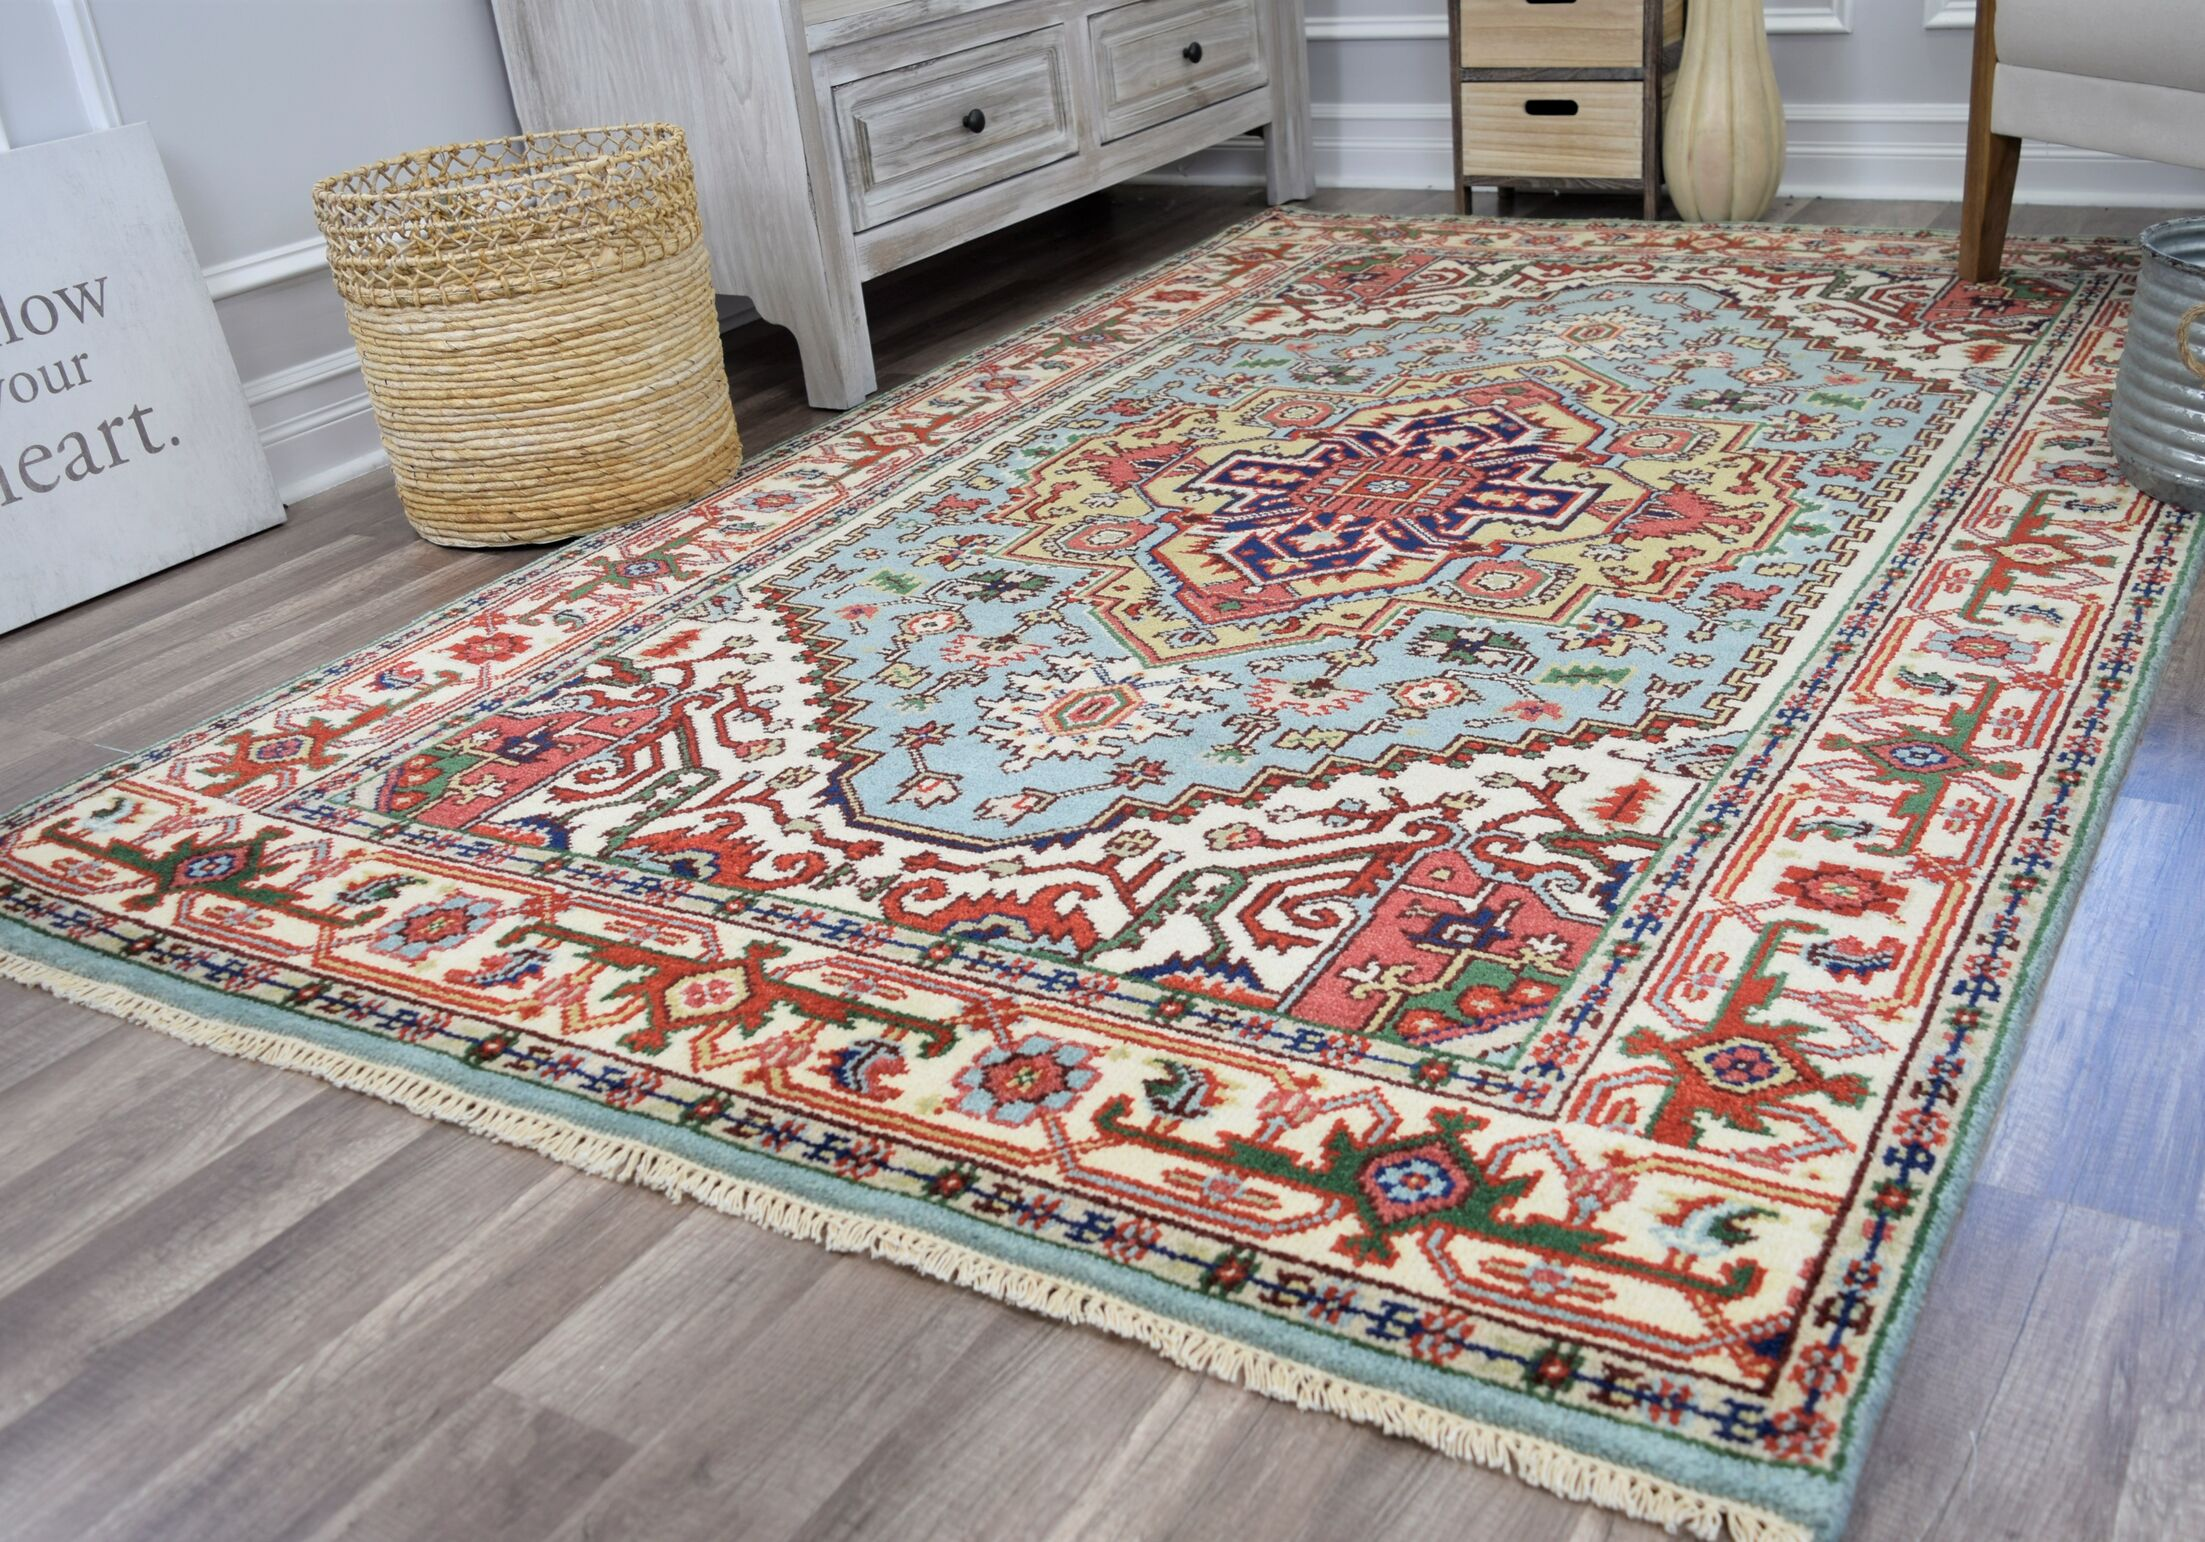 Oriole Hand-Knotted Wool Light Blue/Beige Area Rug Rug Size: Rectangle 4' x 6'